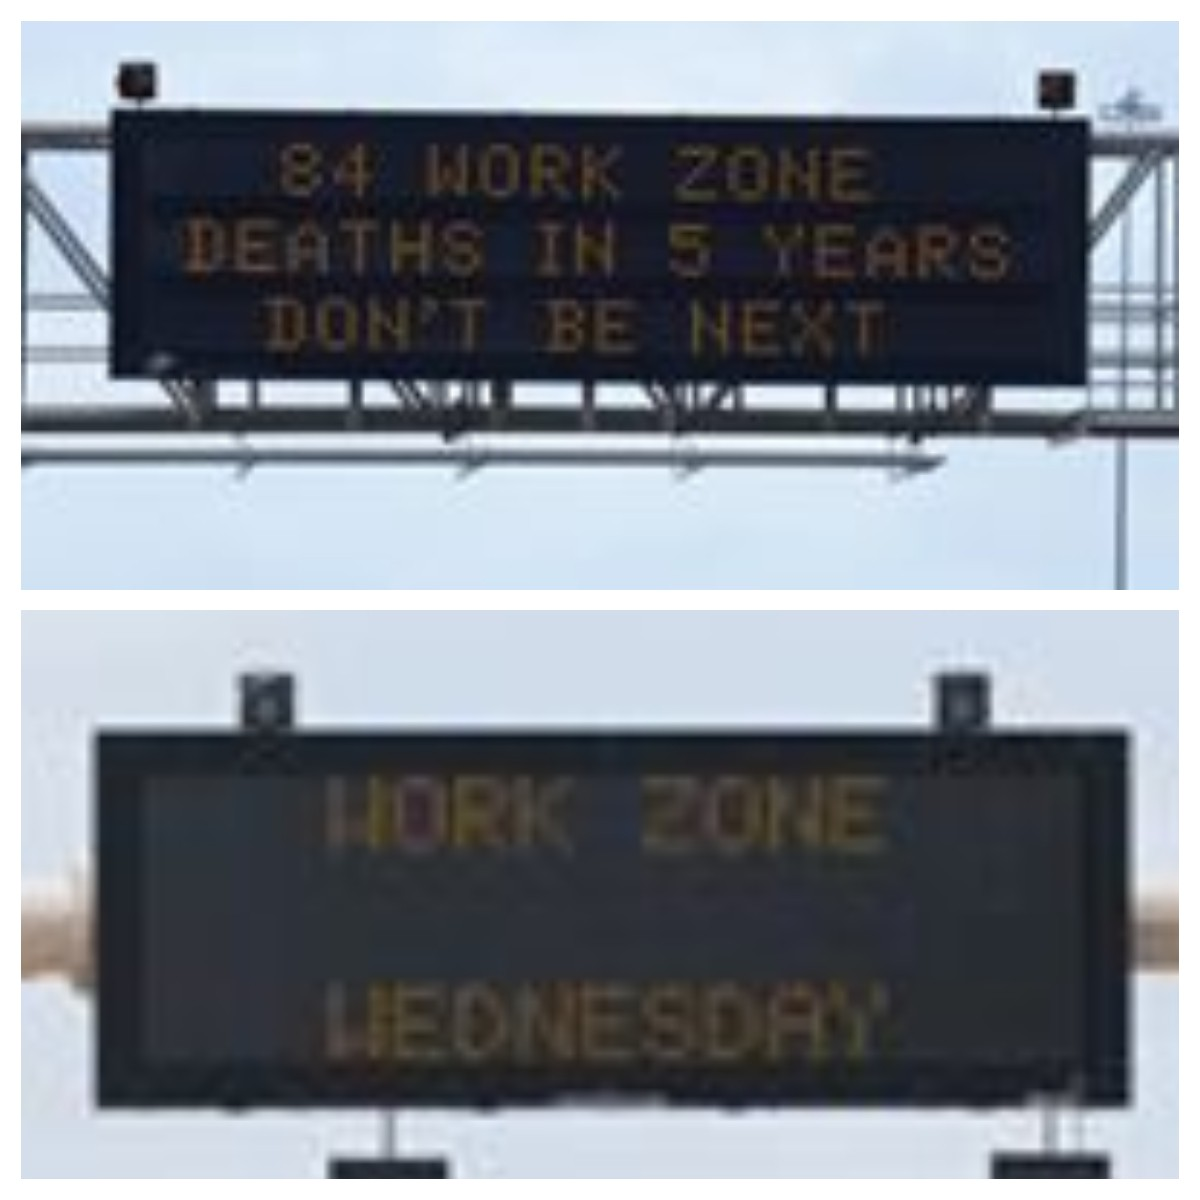 /content/dam/ok/en/odot/images/message-signs/04.13.16.jpg